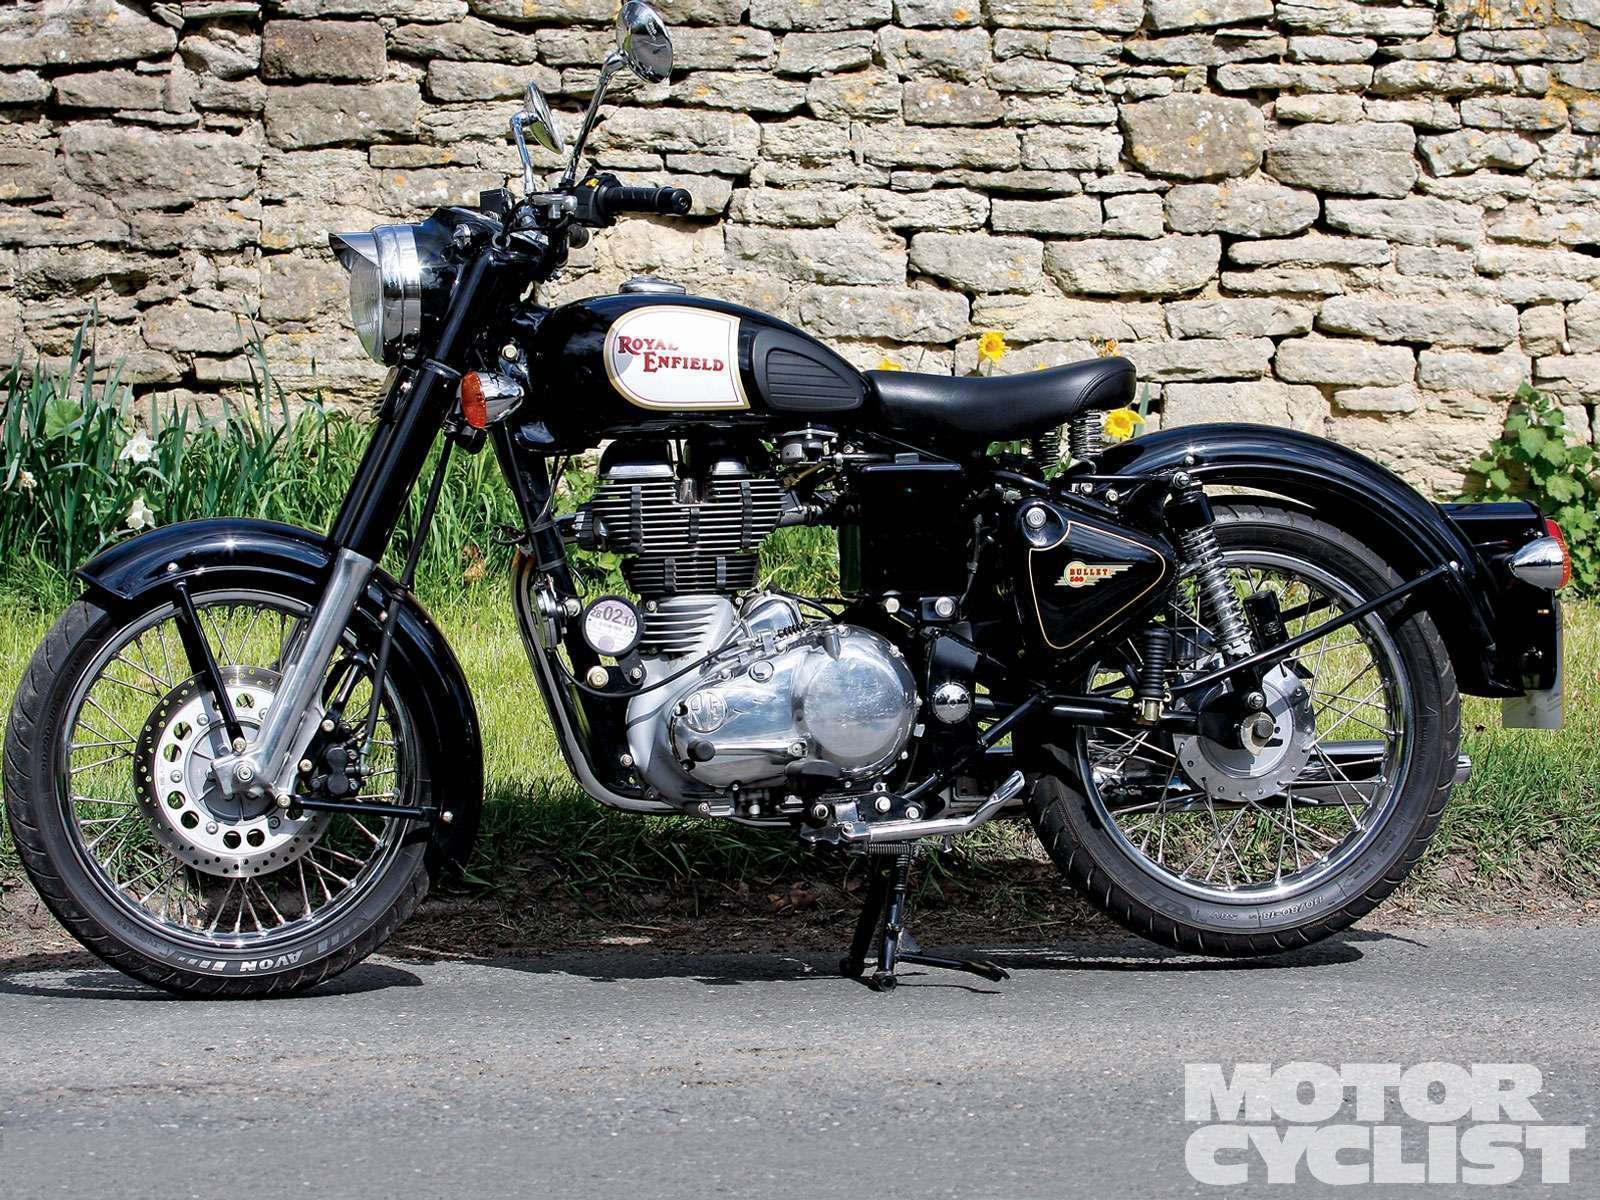 Hd wallpaper royal enfield - Hd Wallpapers Of Bullet Bike